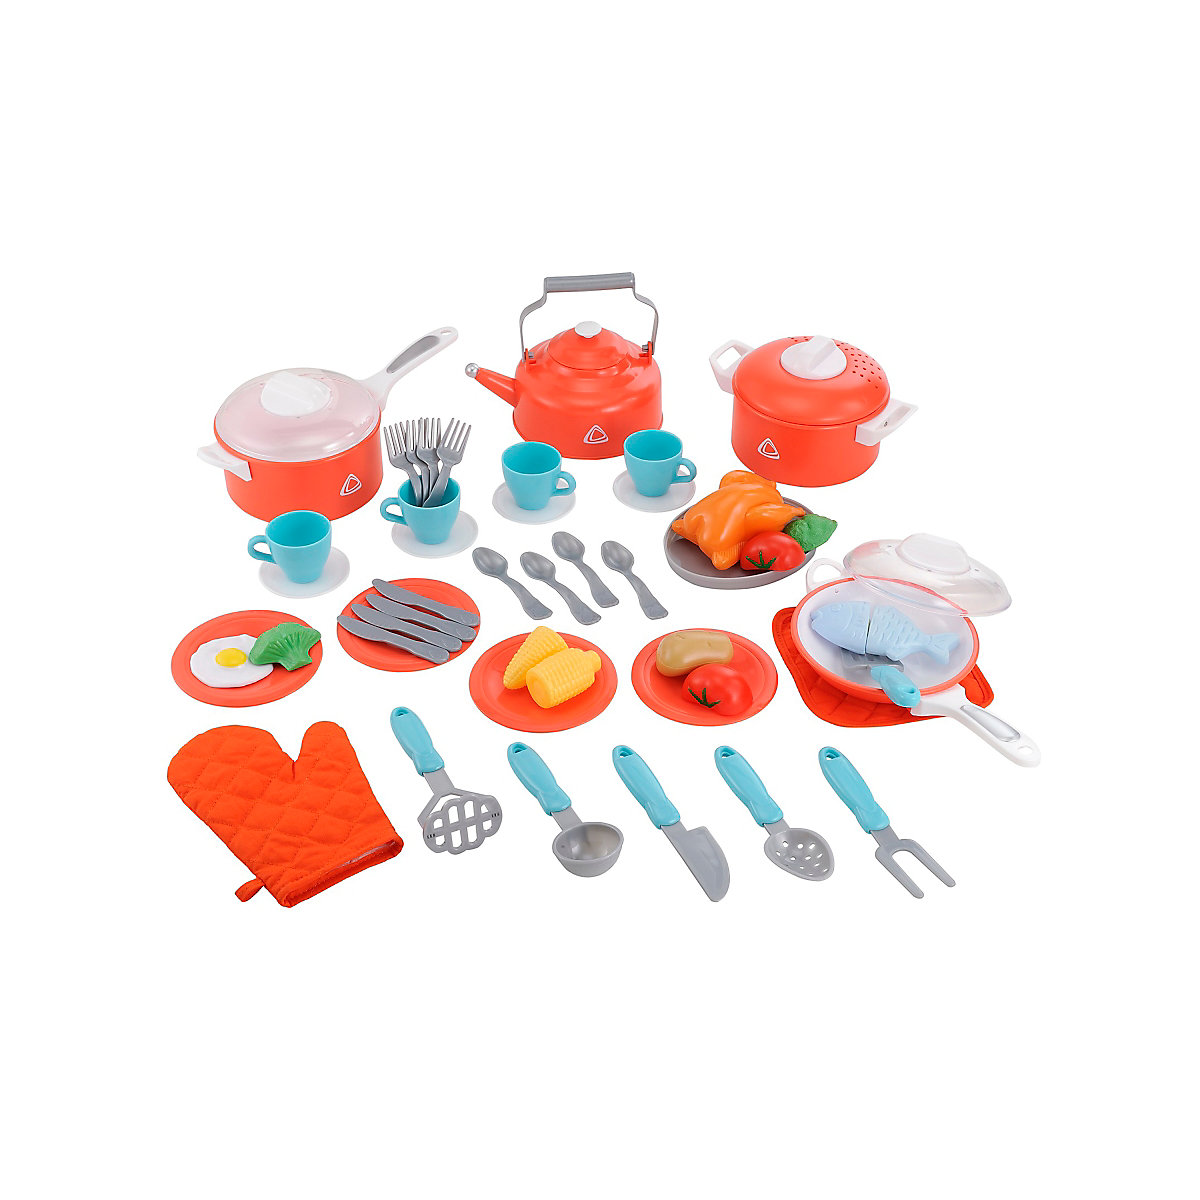 New ELC Boys and Girls Kitchen Set Toy From 3 years